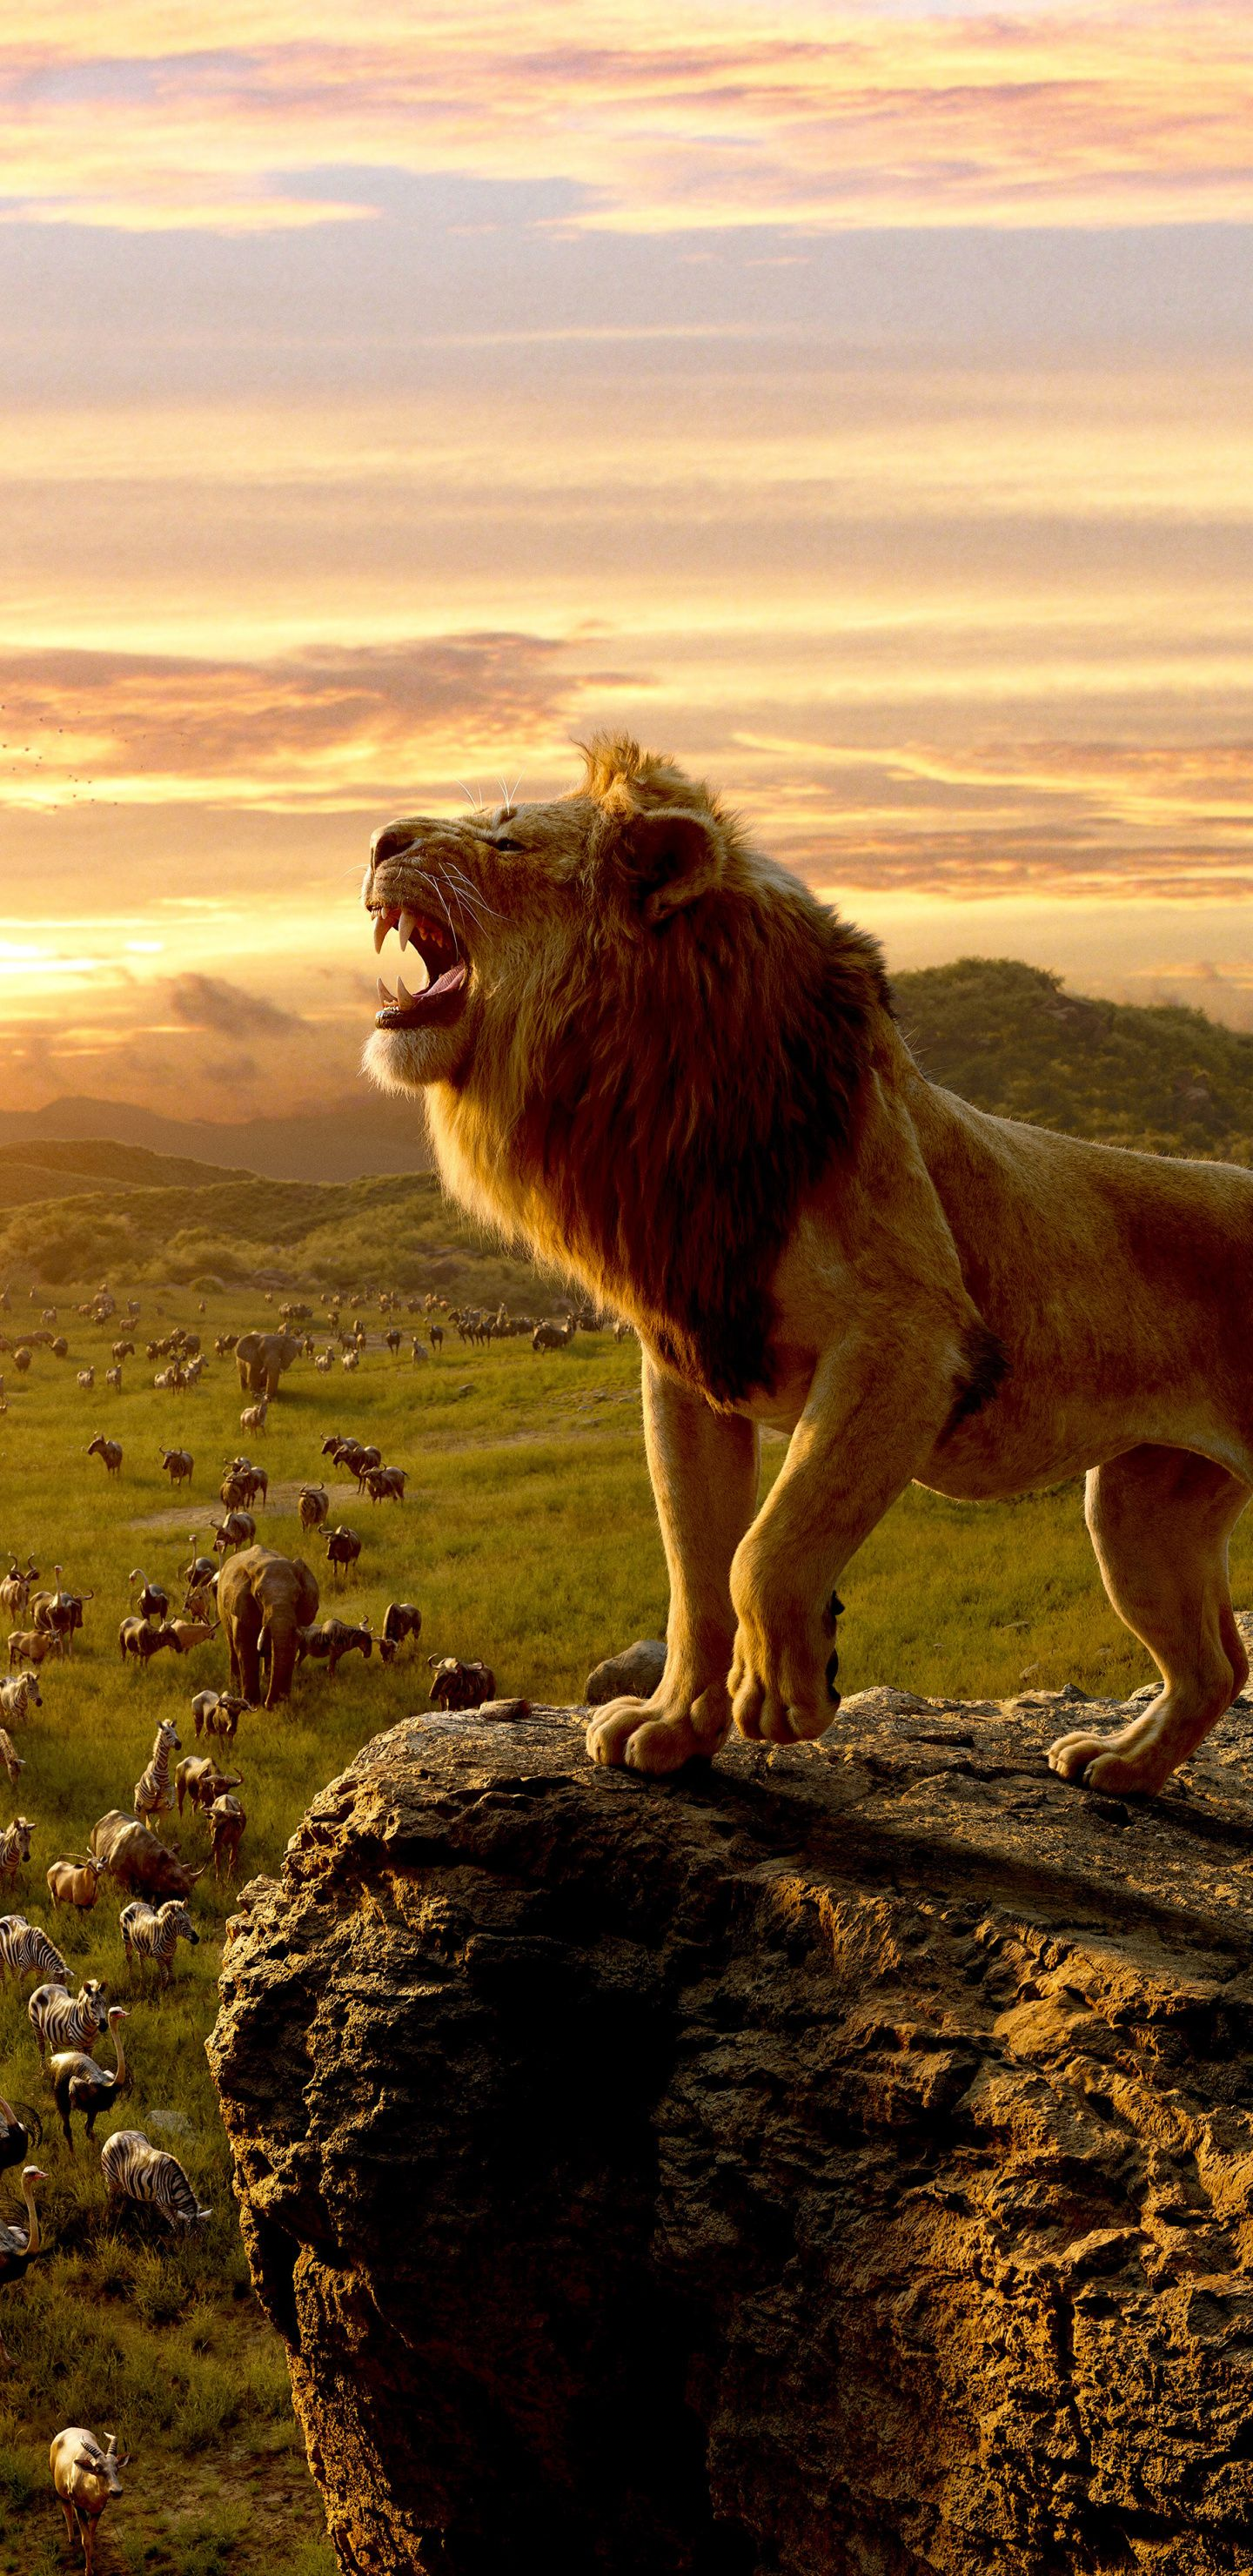 1440x2960 The Lion King King Of Jungle Movie 2019 Simba